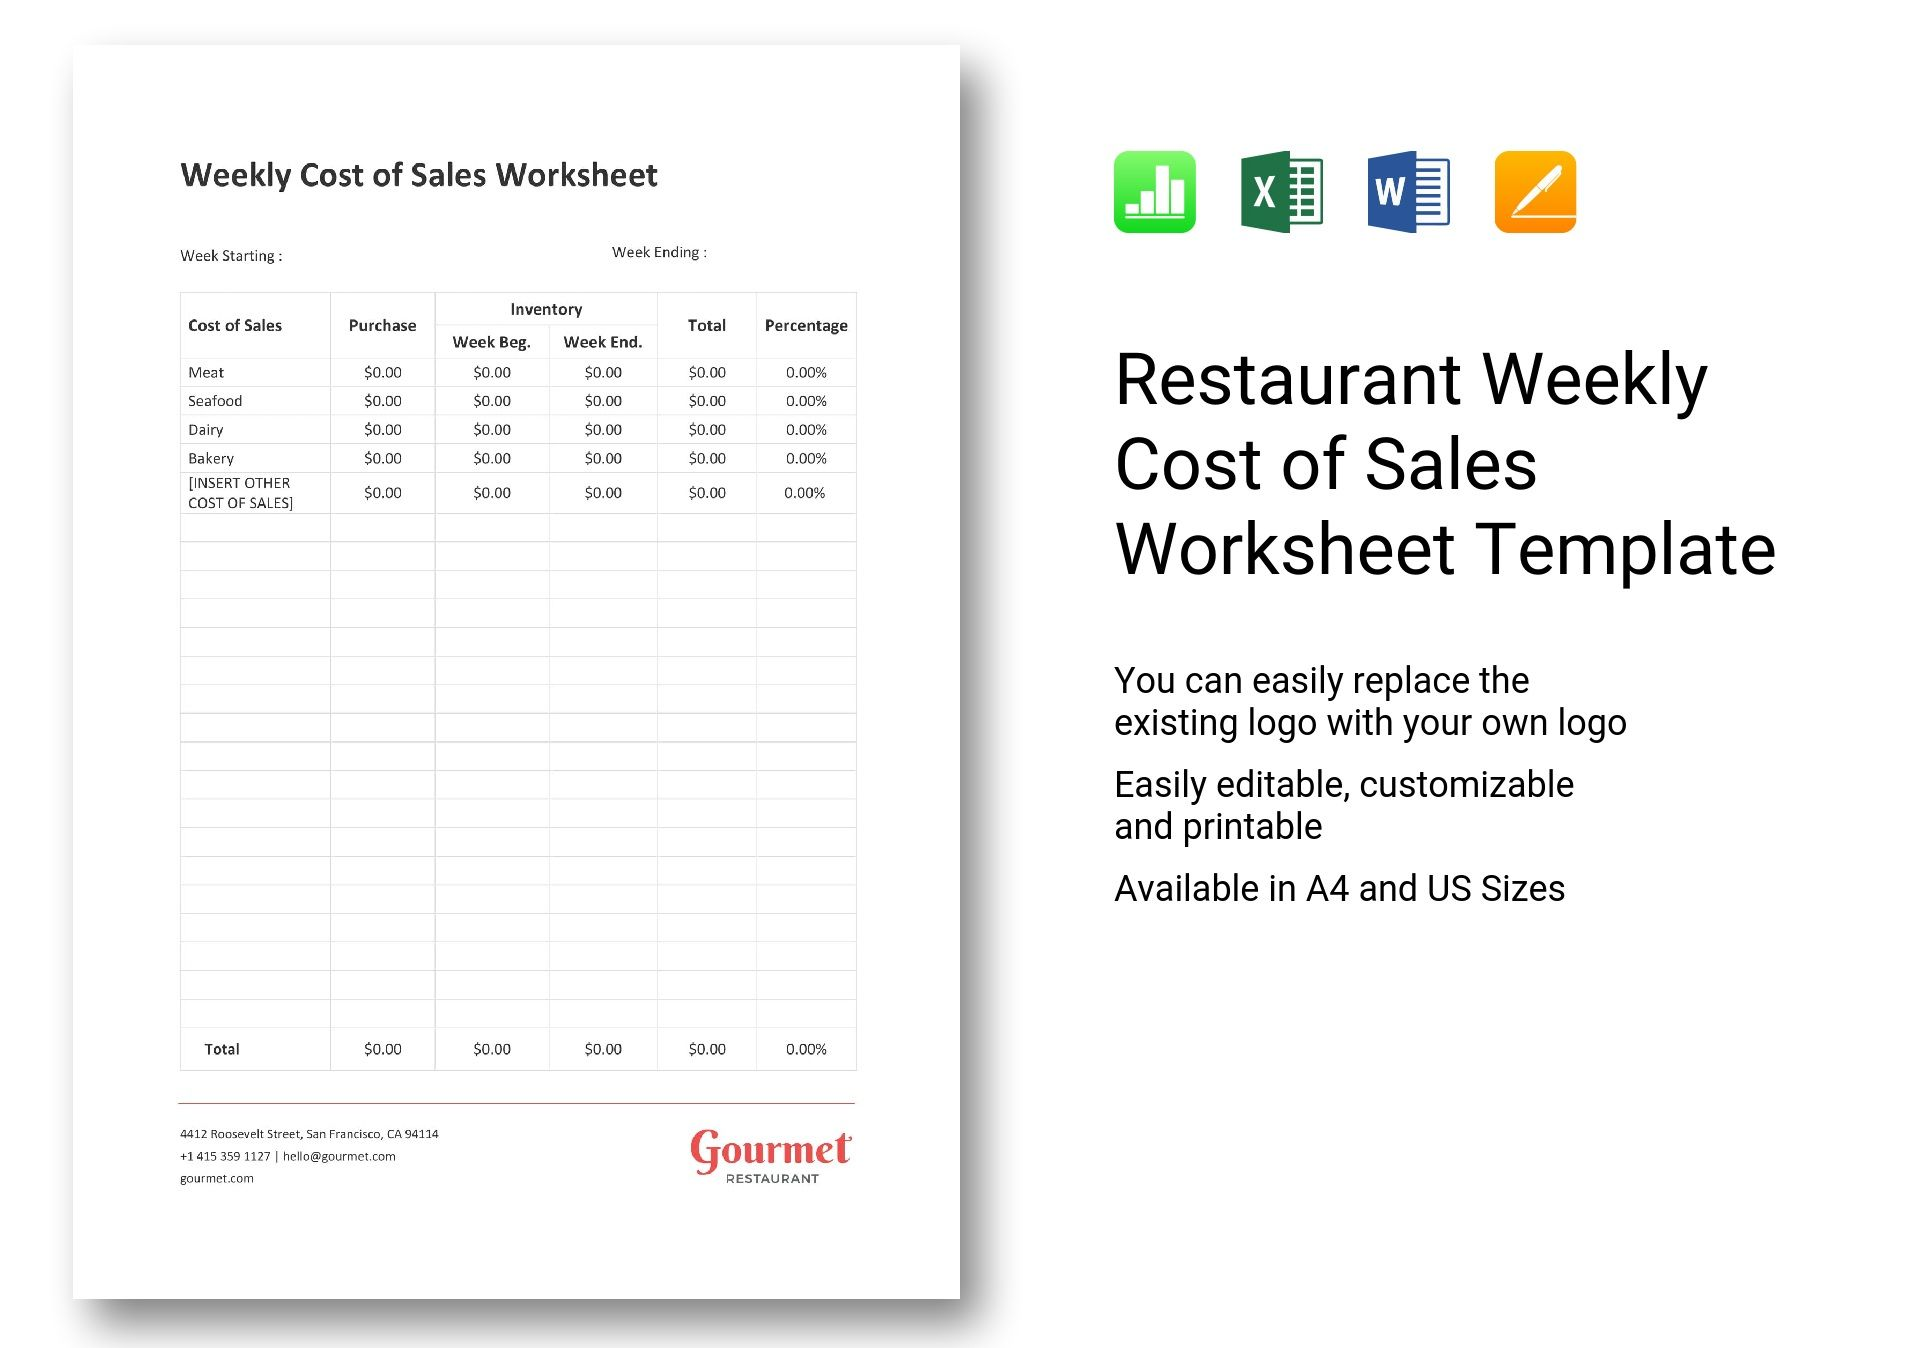 Restaurant Weekly Cost Of Sales Worksheet Template In Word